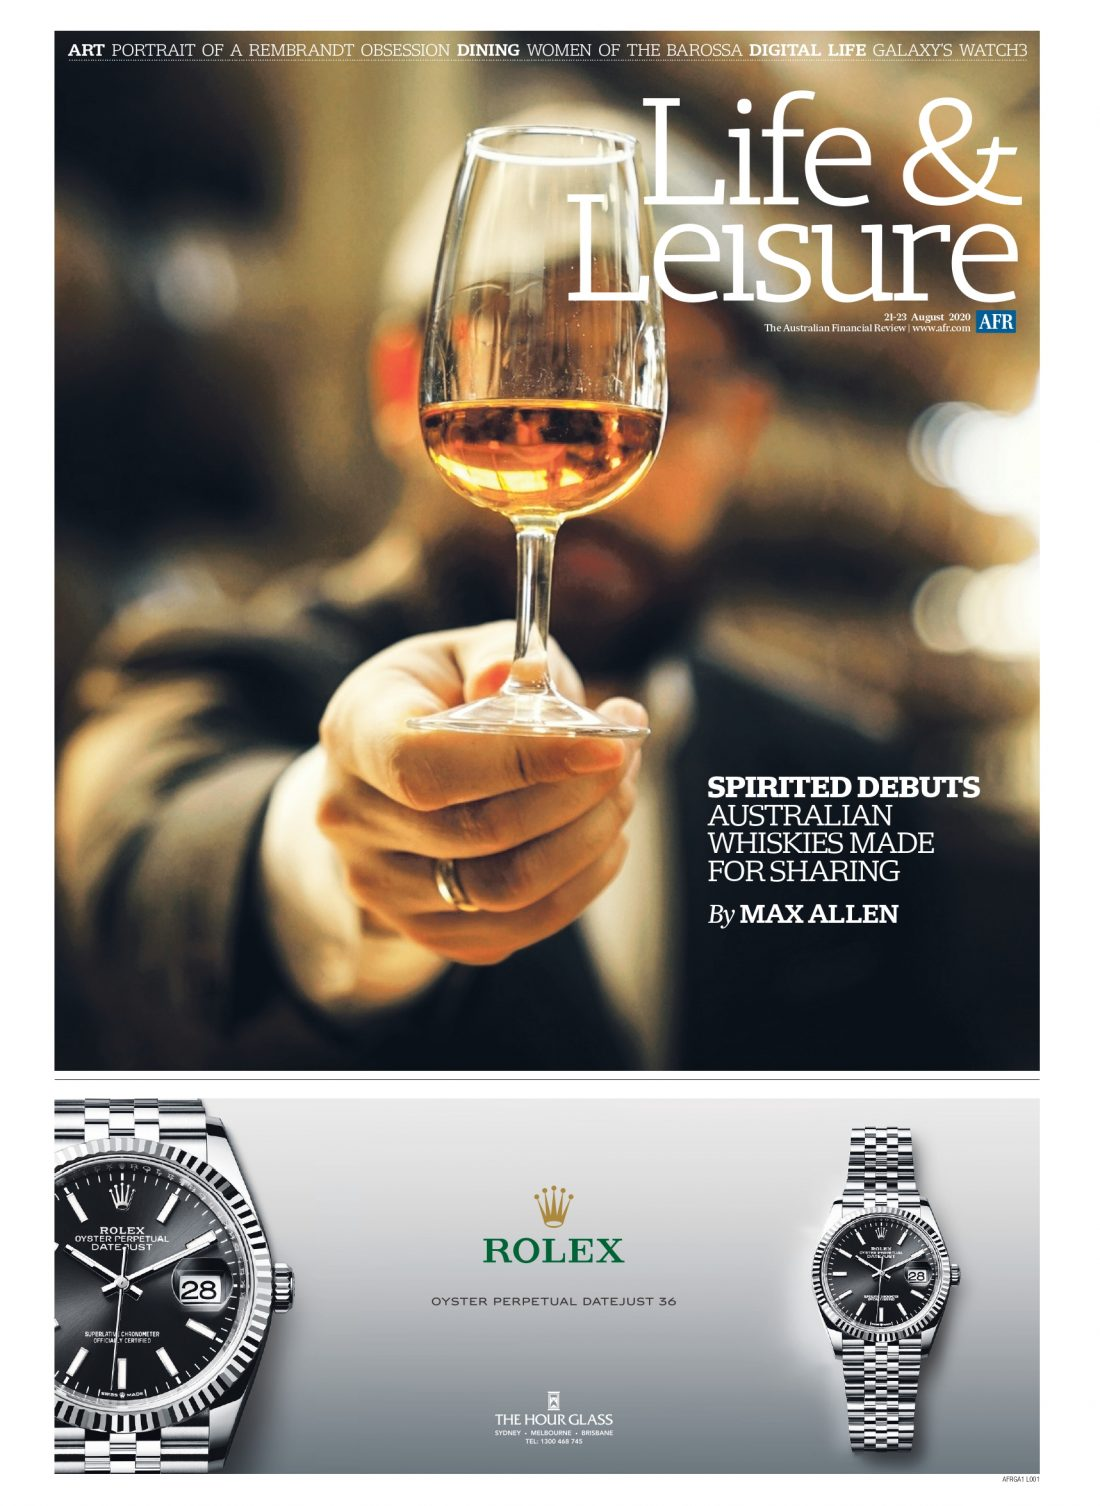 Aust Financial Review, Life & Leisure - Geo Coffee Table